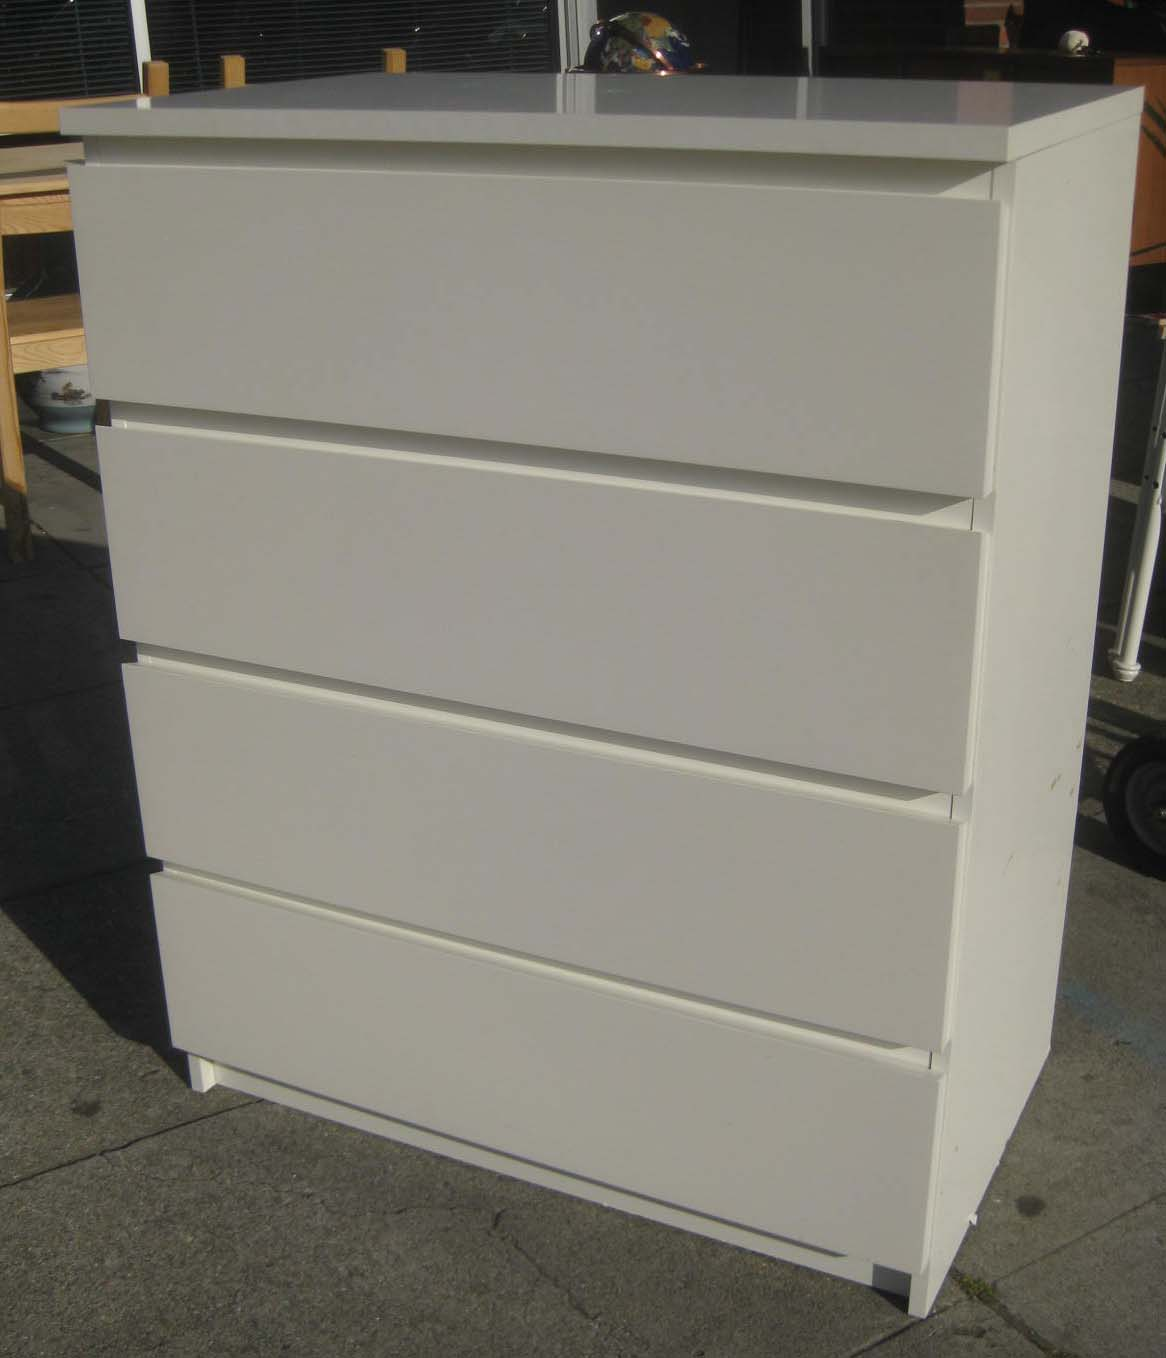 ikea bedroom furniture drawers photo - 2